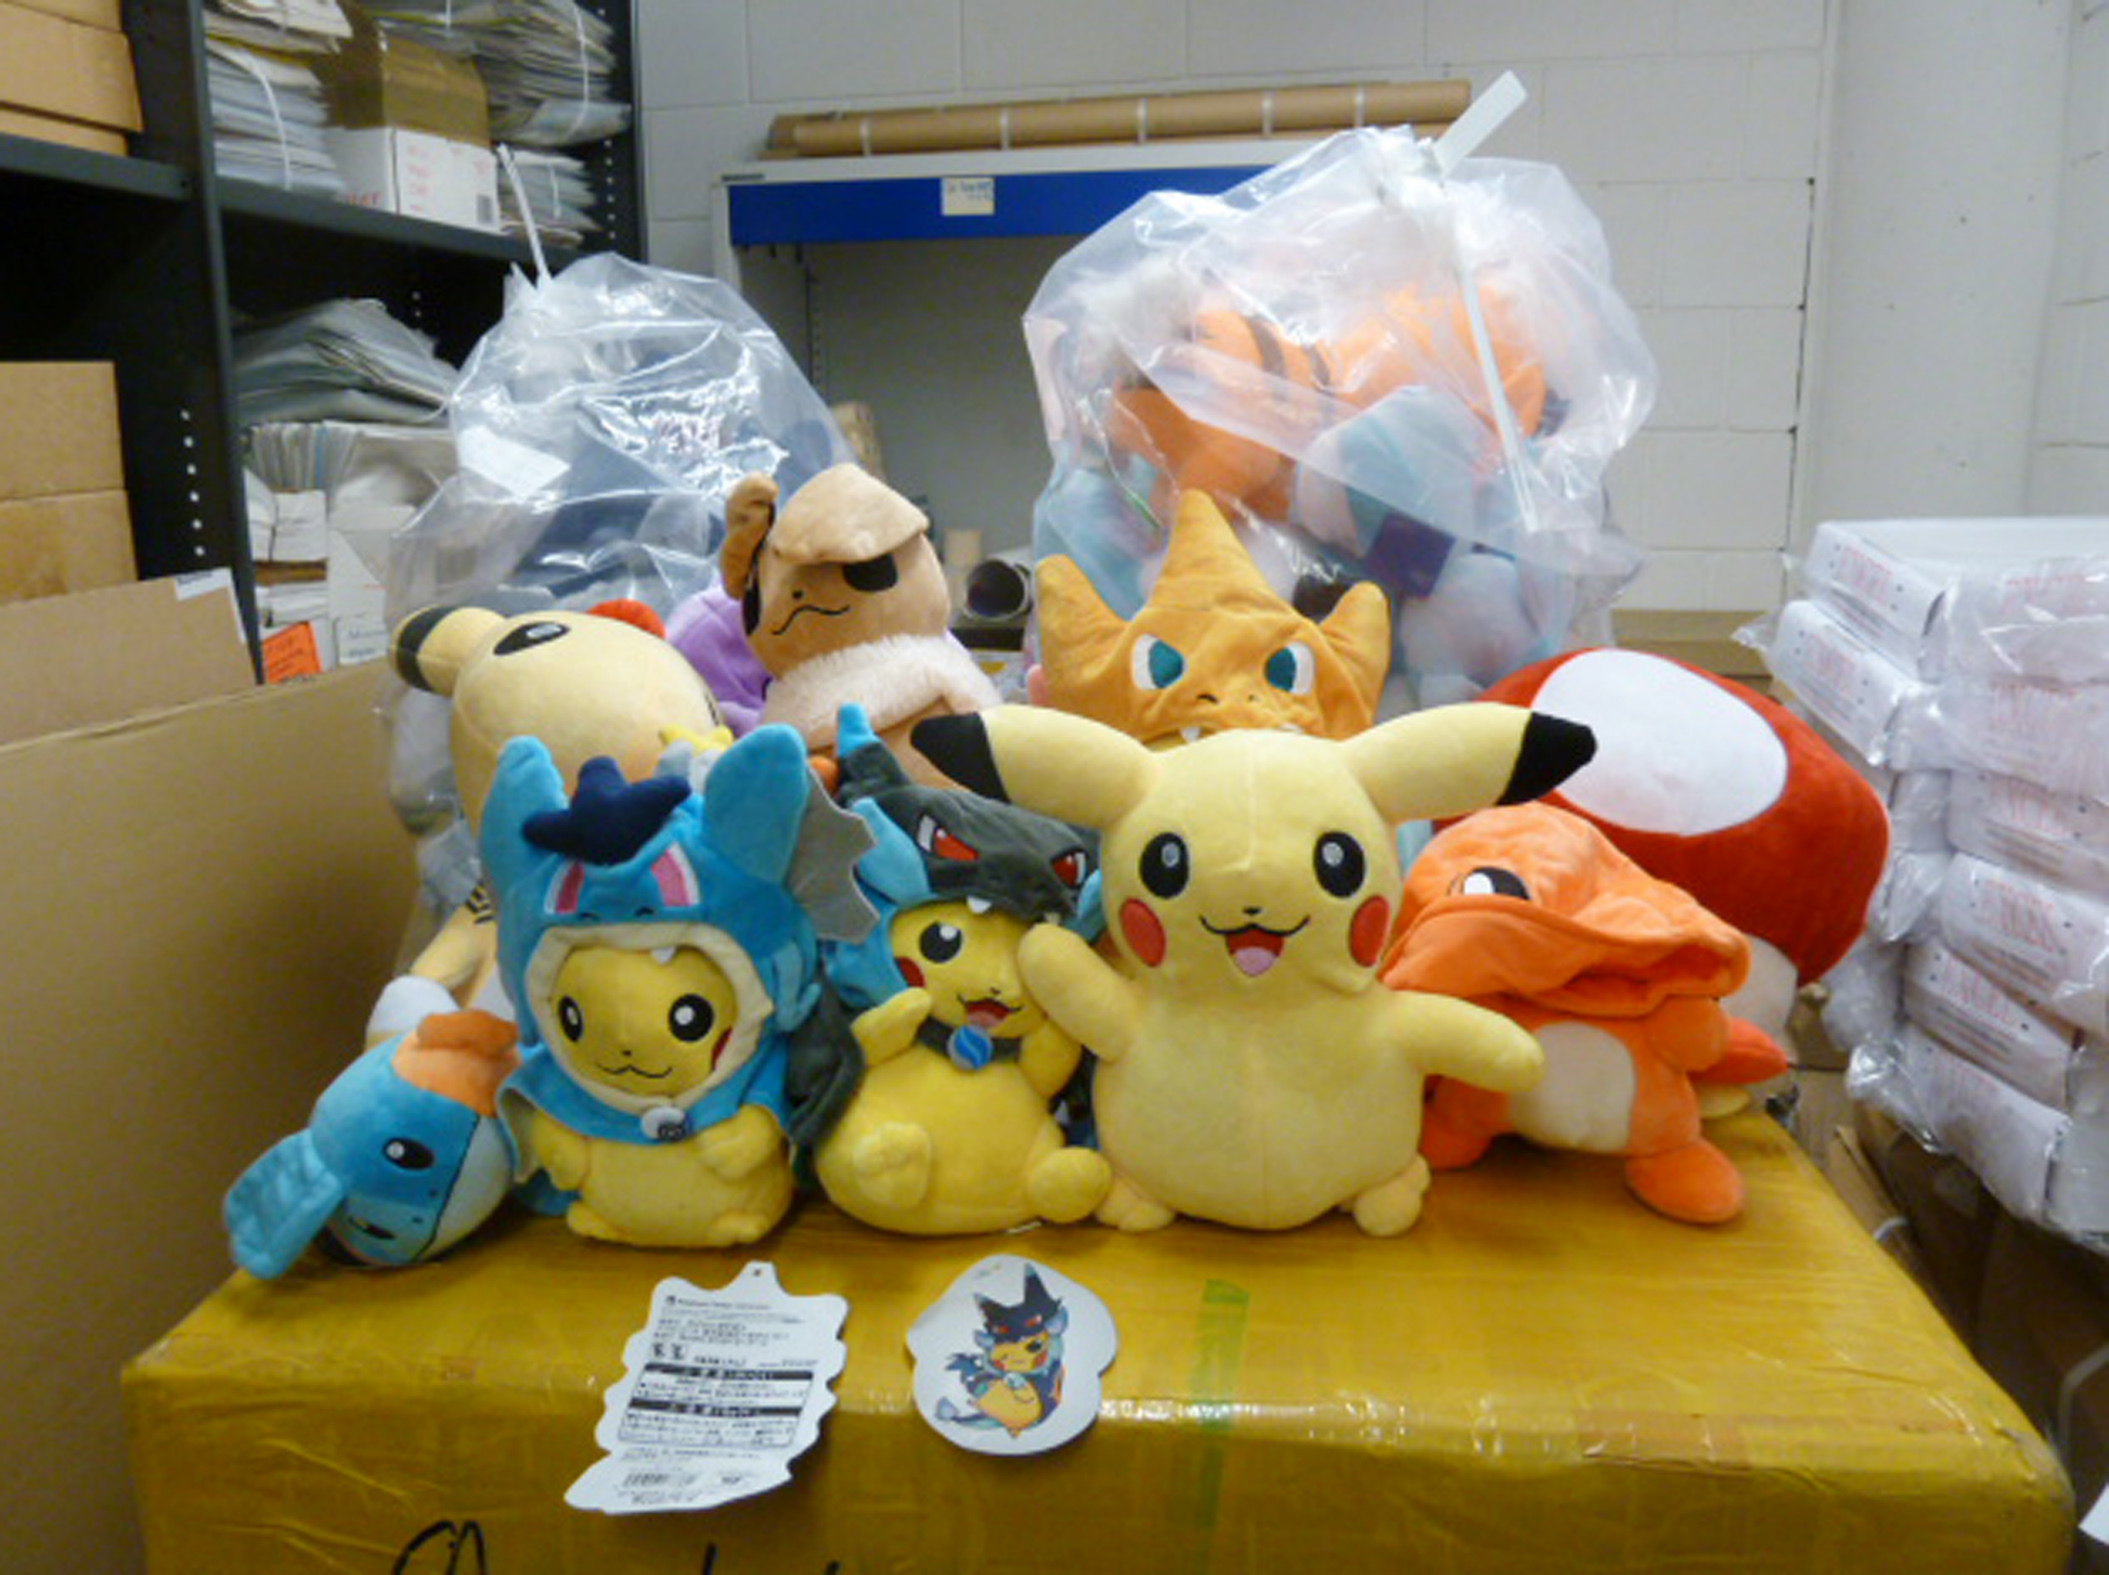 Counterfeit Pokemon goods (Home Office/PA Wire)